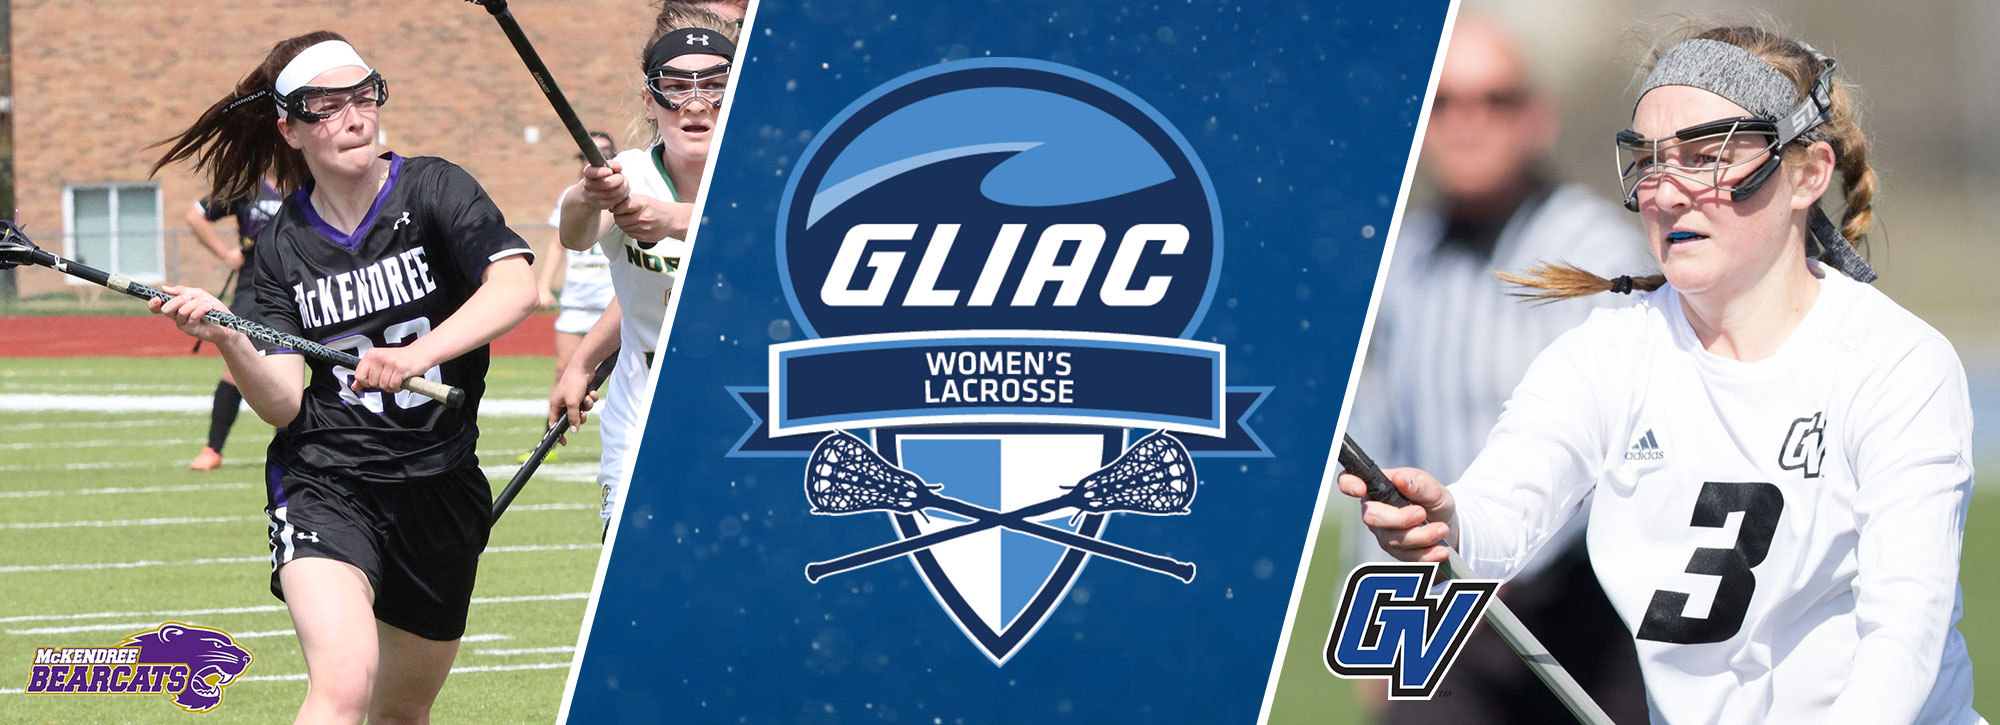 GVSU's Neuman, McKendree's Sugarman Earn GLIAC Lacrosse Weekly Honors